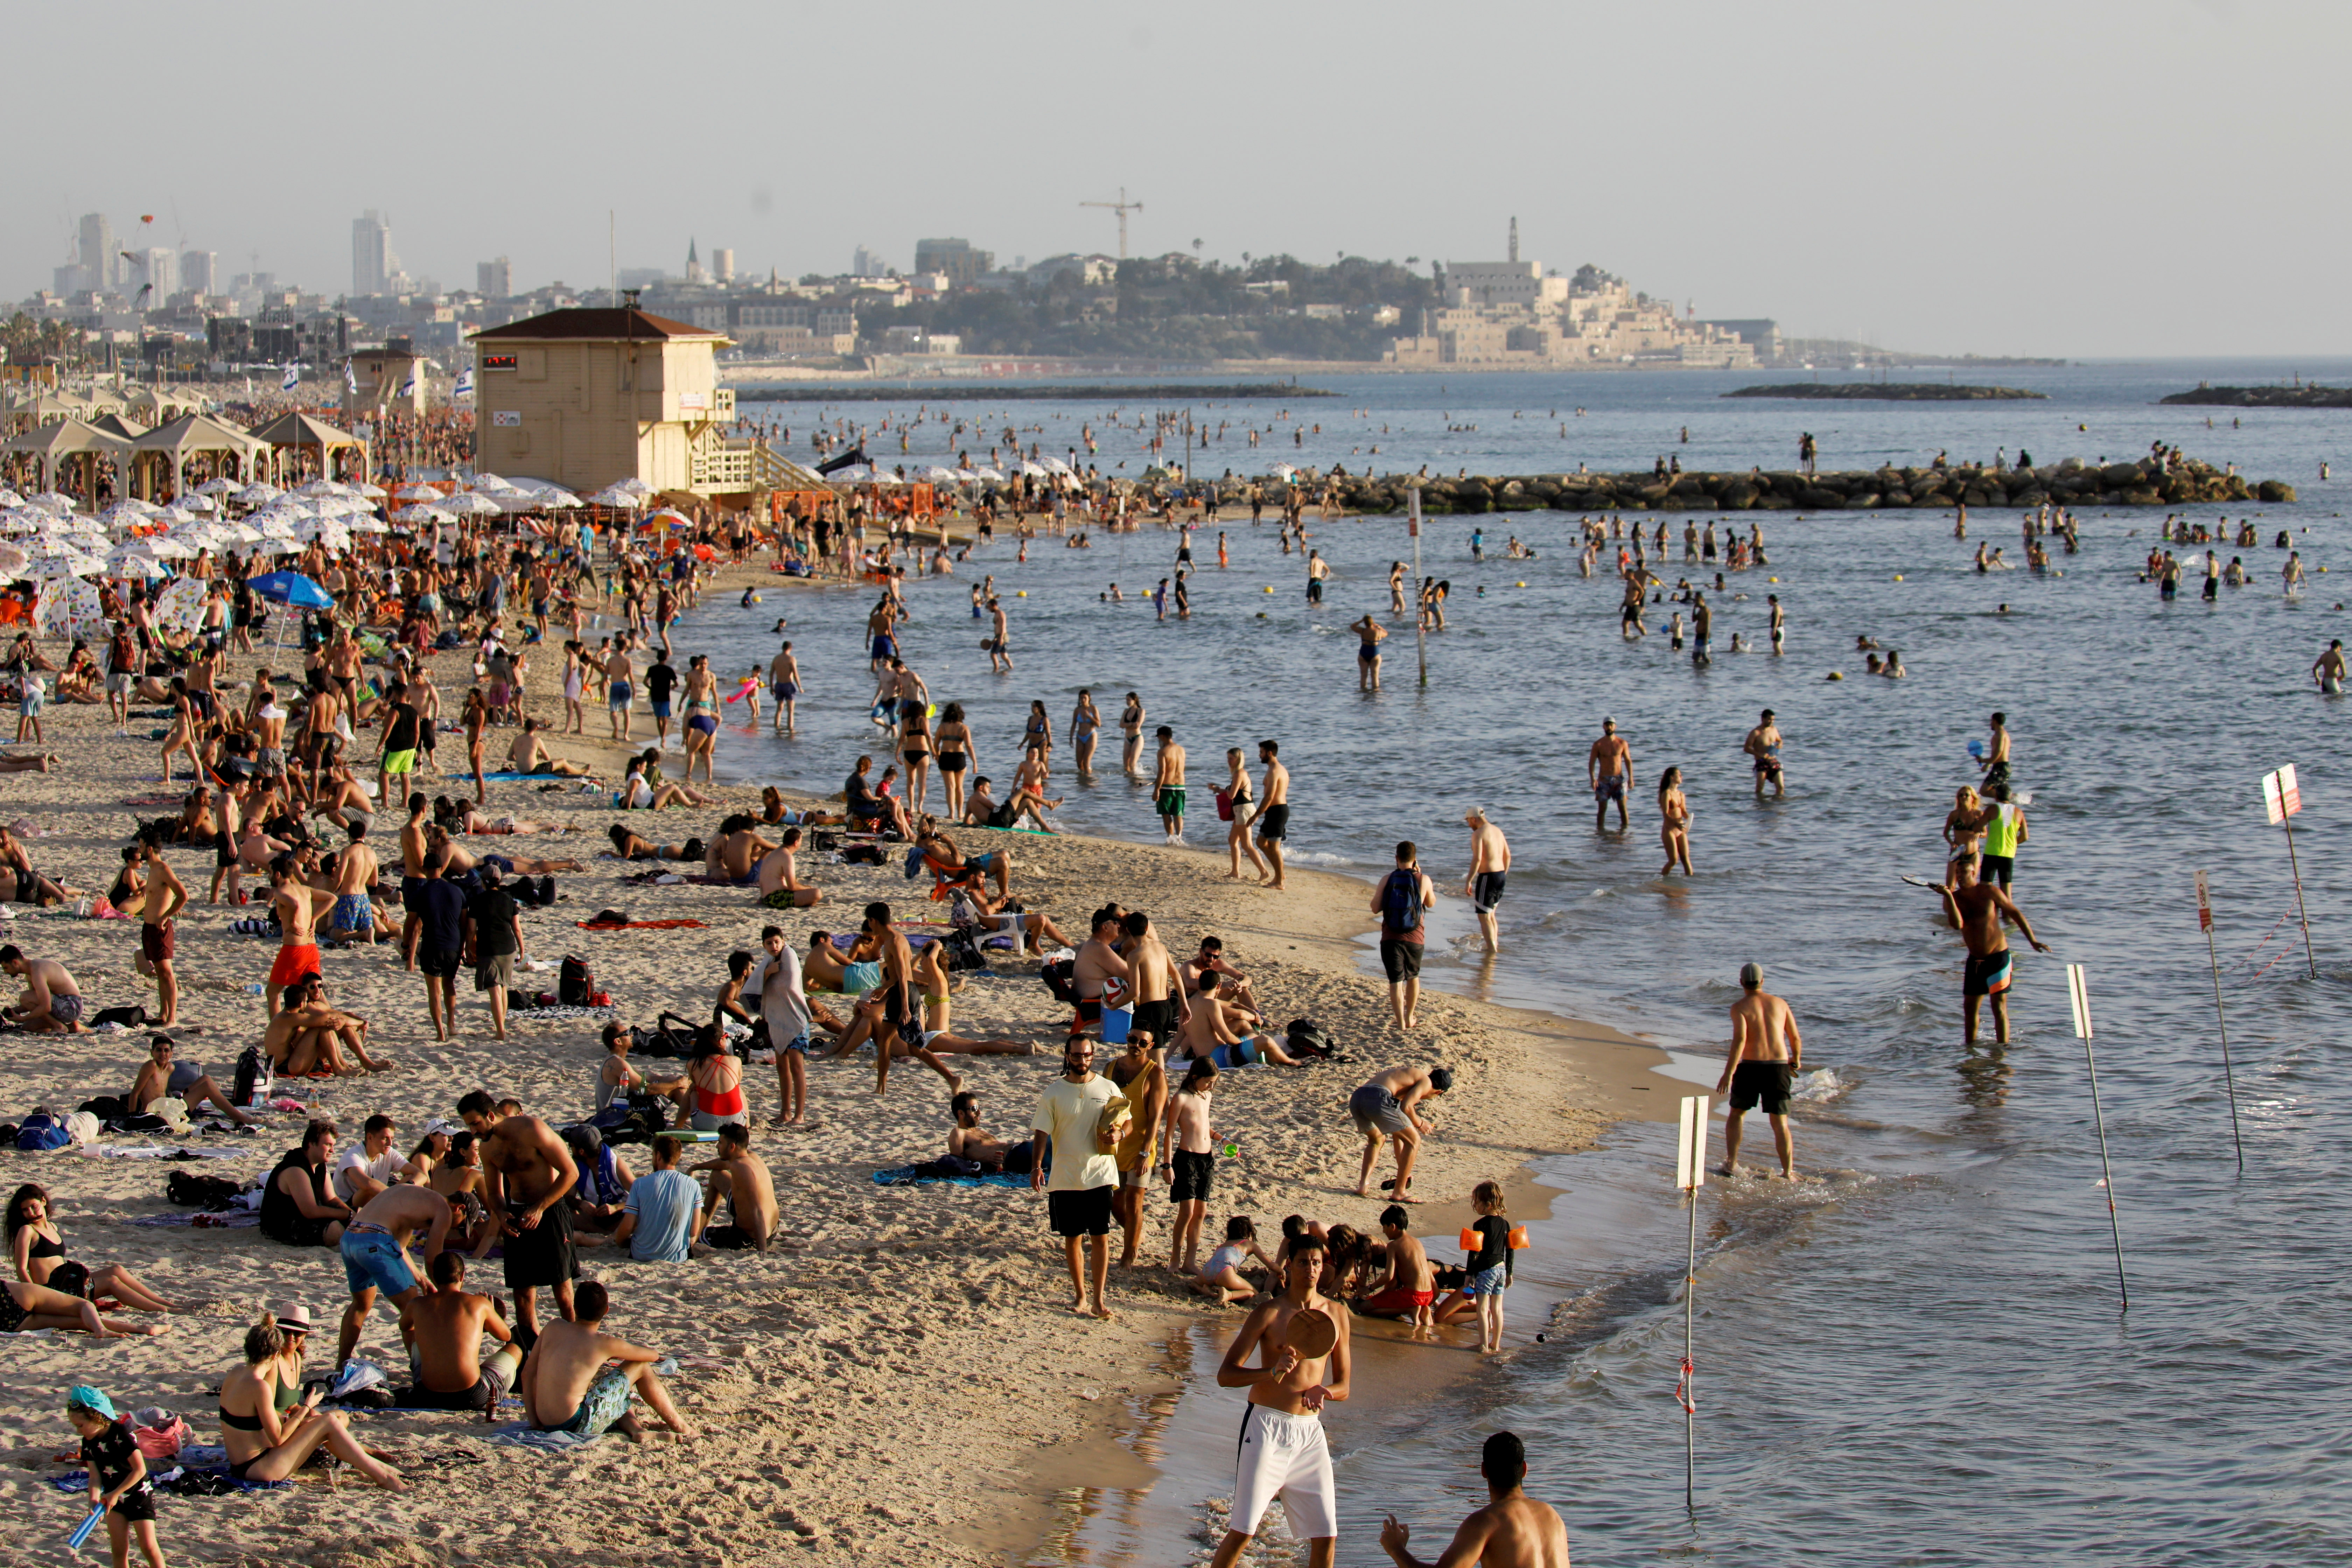 Beachgoers hang out on the shore of the Mediterranean sea in Tel Aviv as coronavirus disease (COVID-19) restrictions eased in Israel May 21, 2020. REUTERS/Amir Cohen